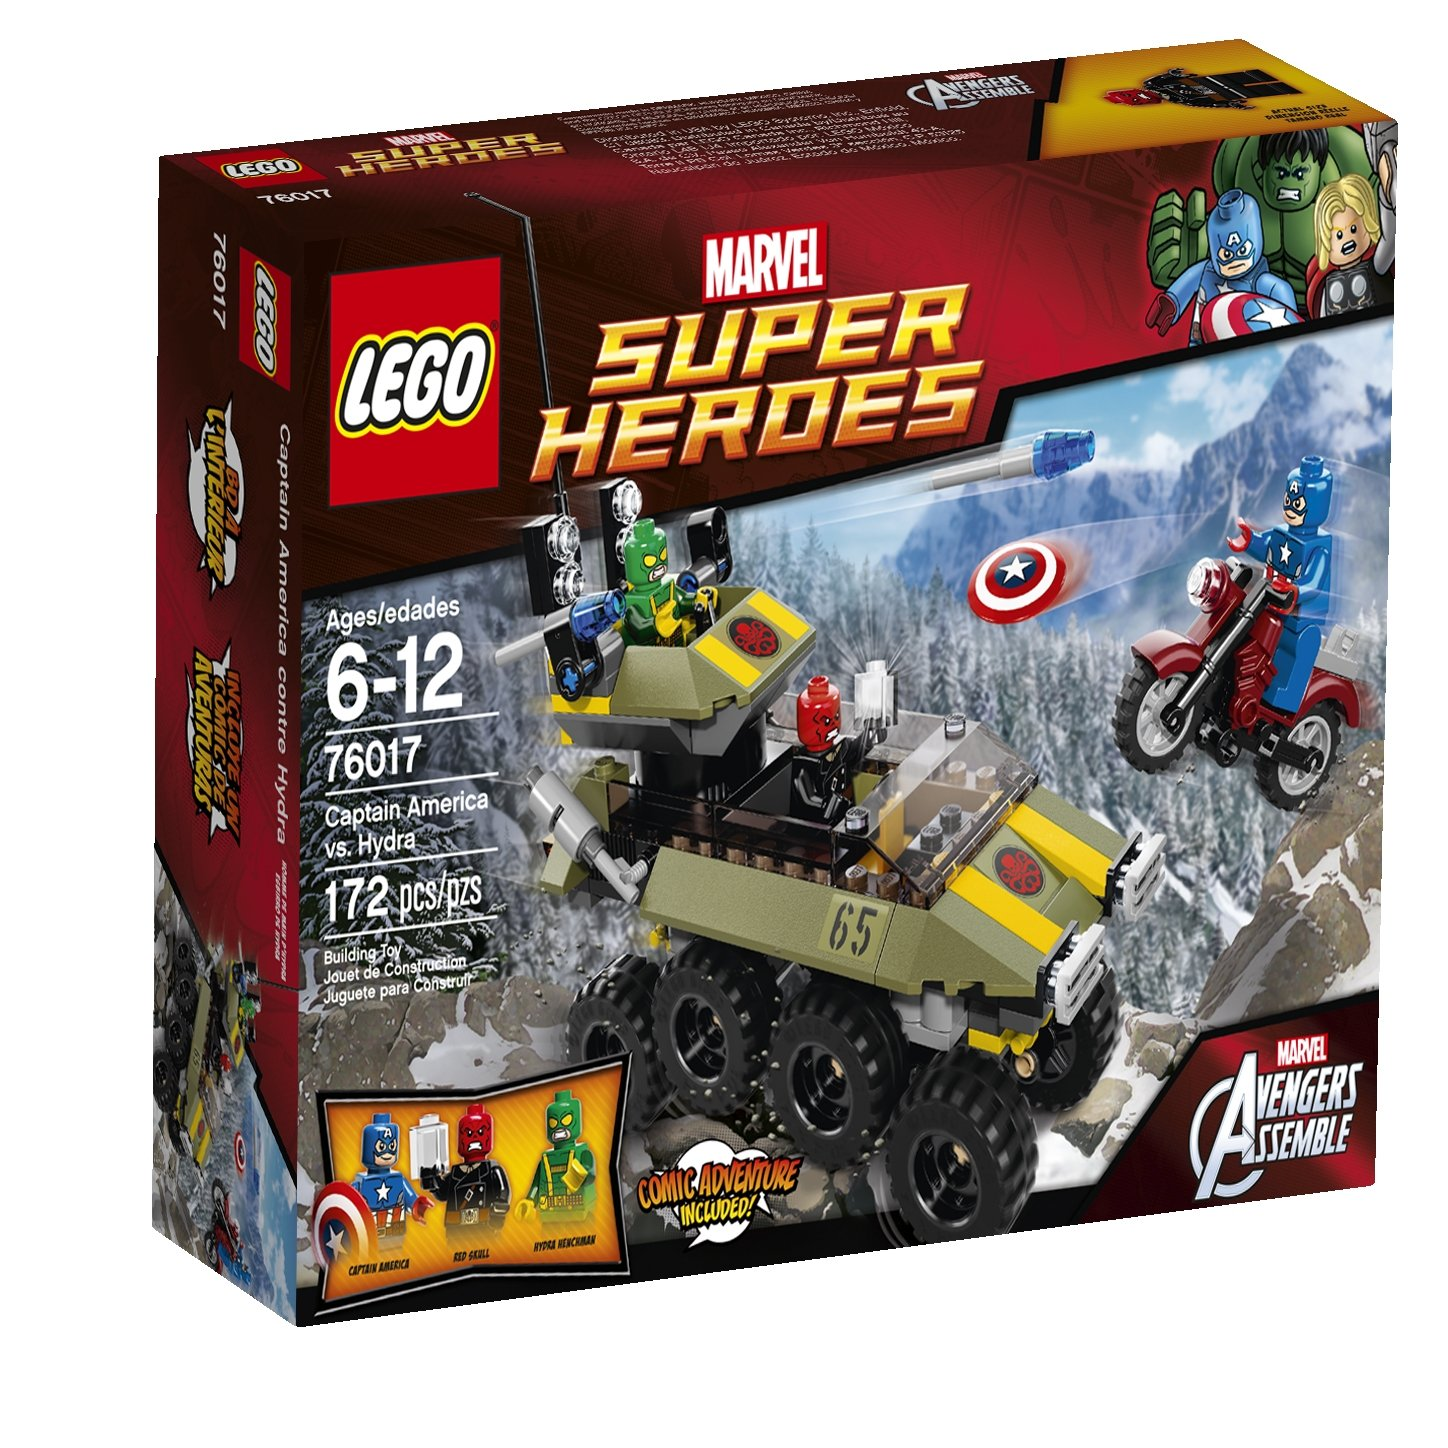 Top 9 Best LEGO Captain America Sets Reviews in 2019 5